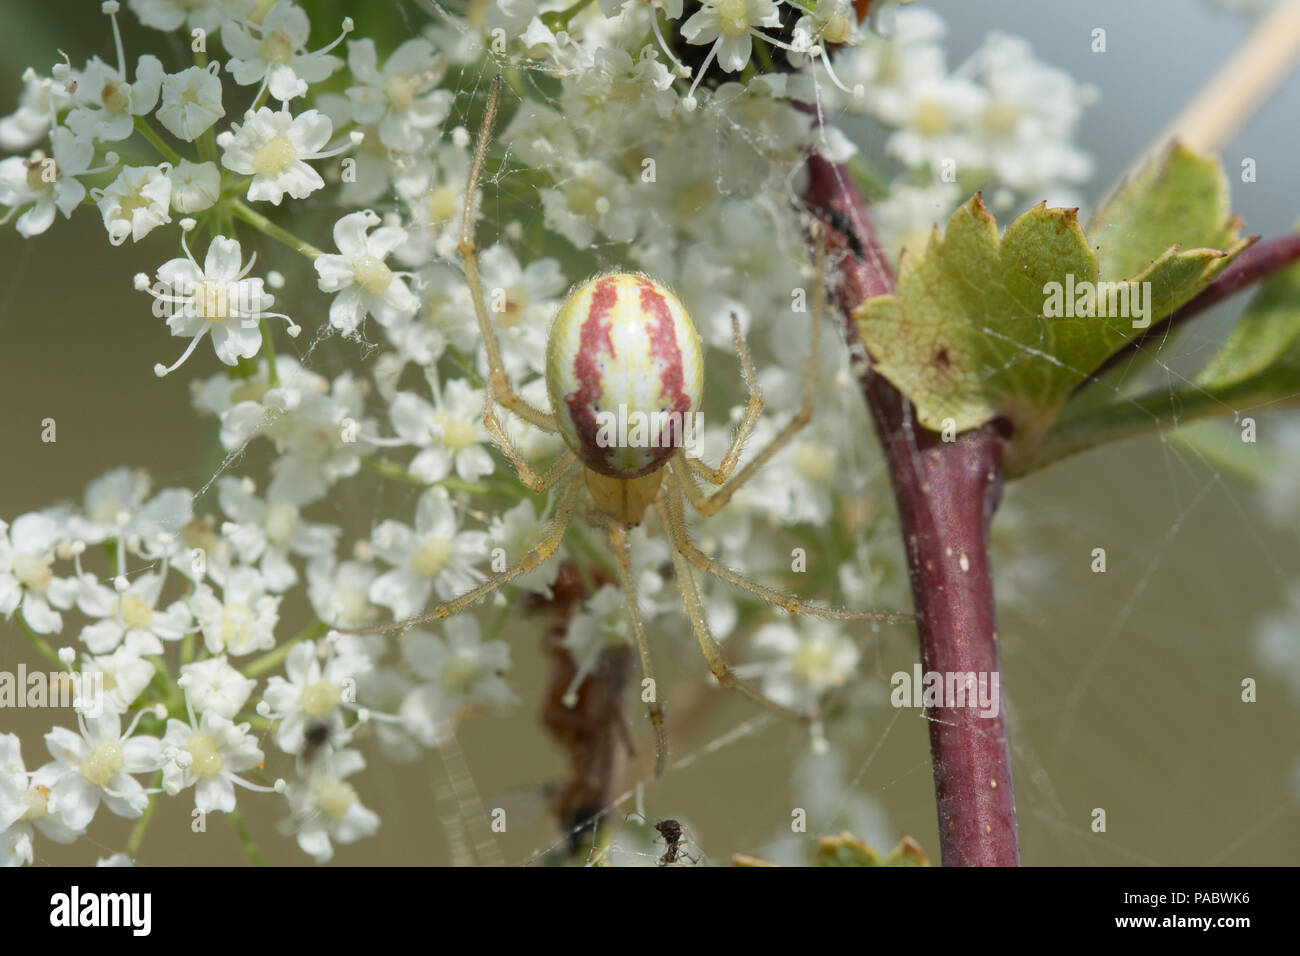 Candy striped spider (Enoplognatha ovata) - Stock Image